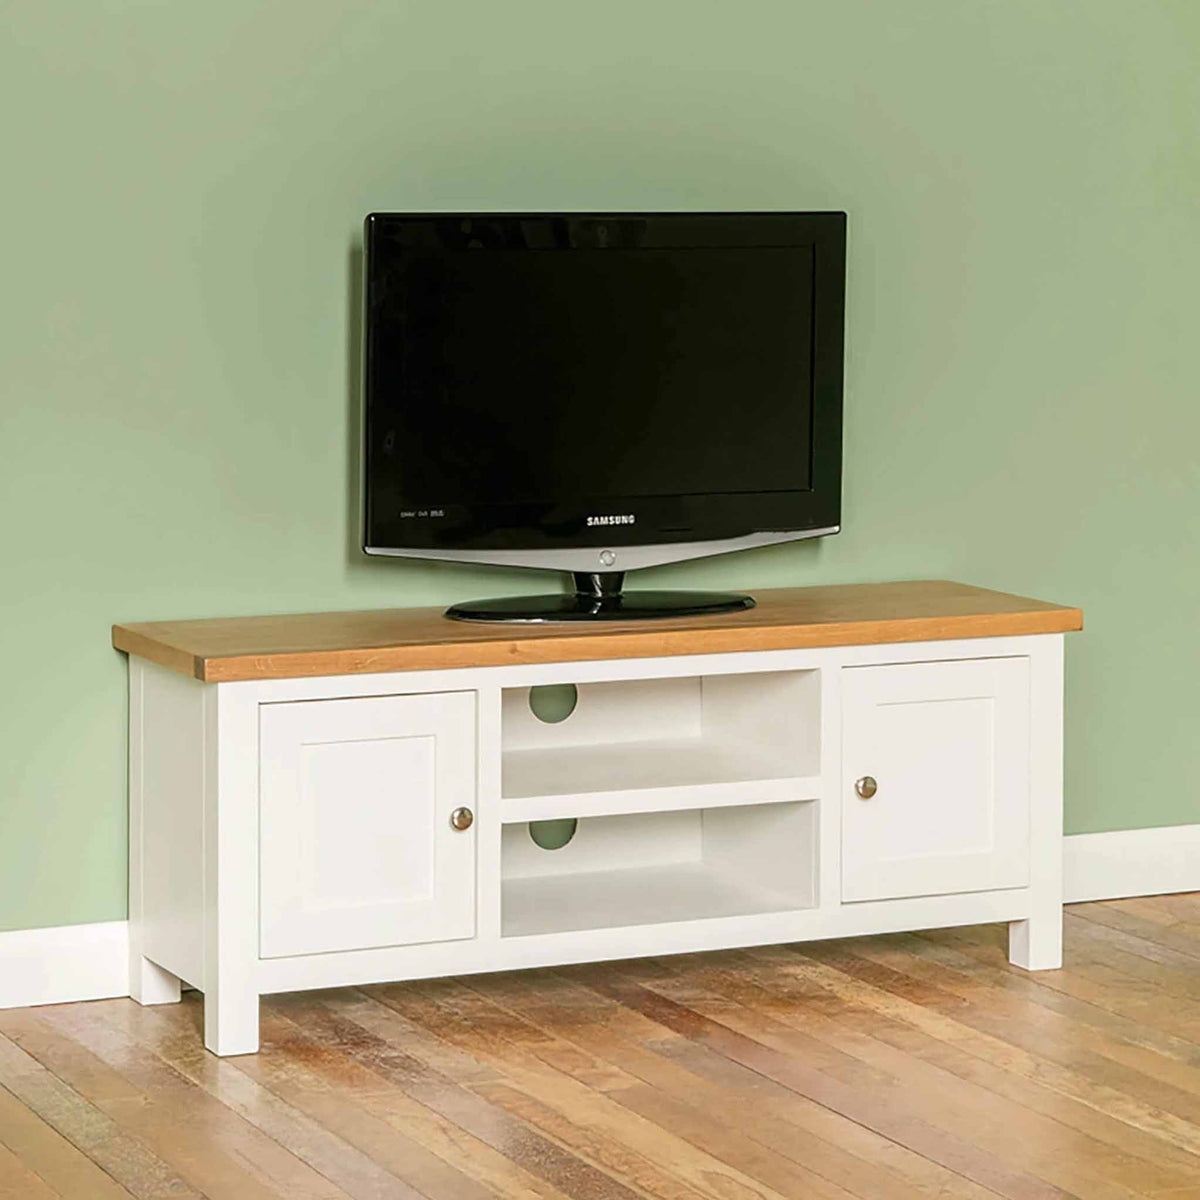 Farrow white 120cm TV Stand - Lifestyle side view